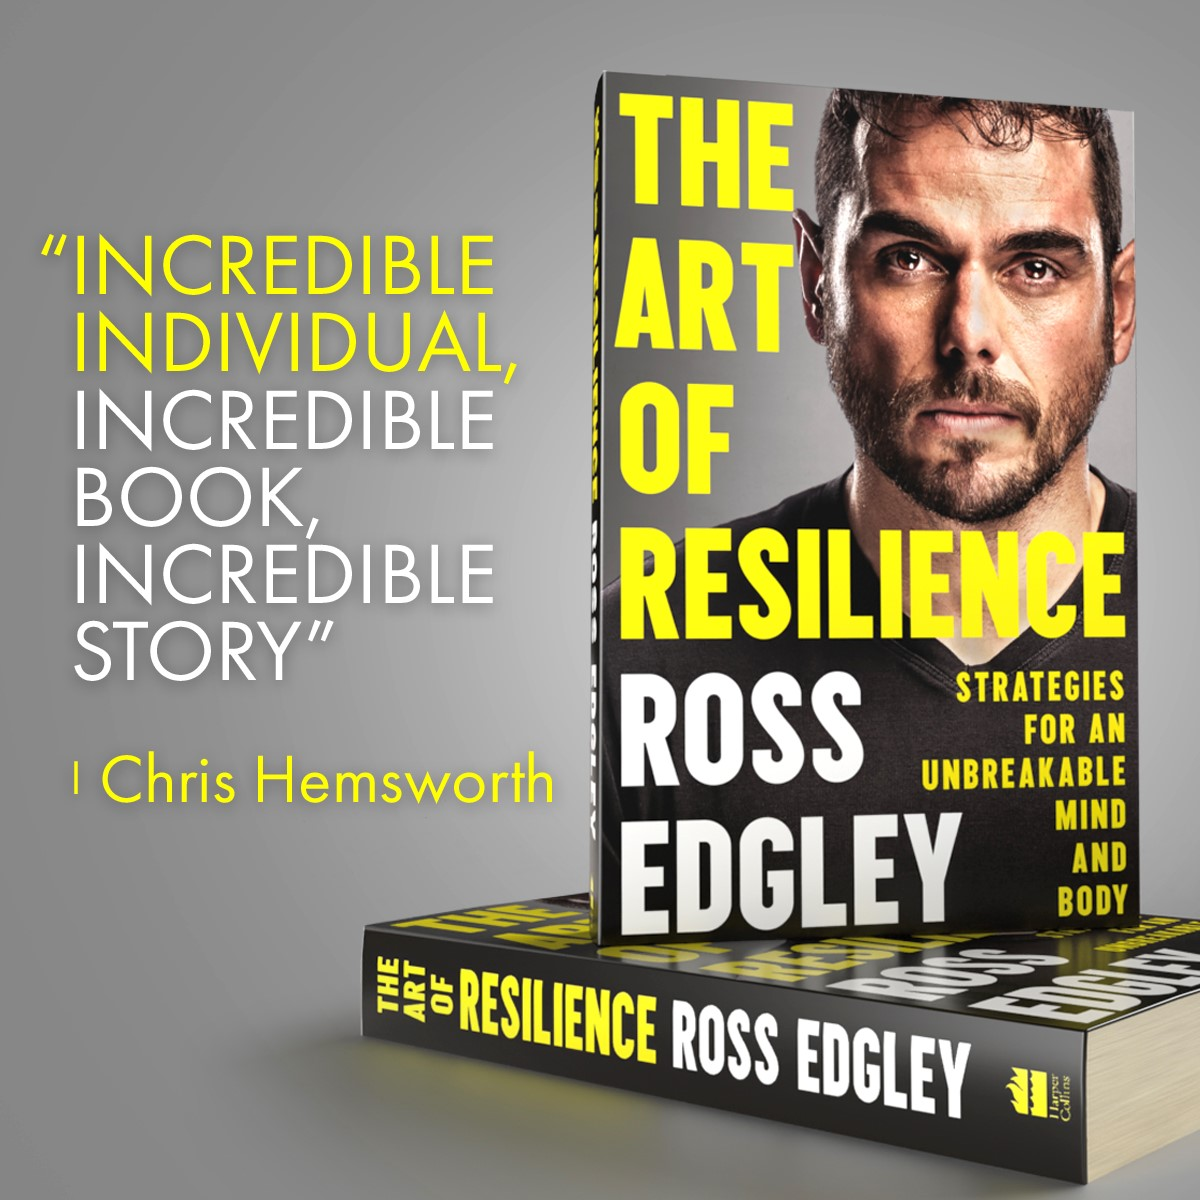 Happy Publication Day, @RossEdgley! The brilliant The Art Of Resilience: Strategies for an Unbreakable Mind and Body is out today! 🎉🍾🎆 Order your copy here: smarturl.it/theartofresili…